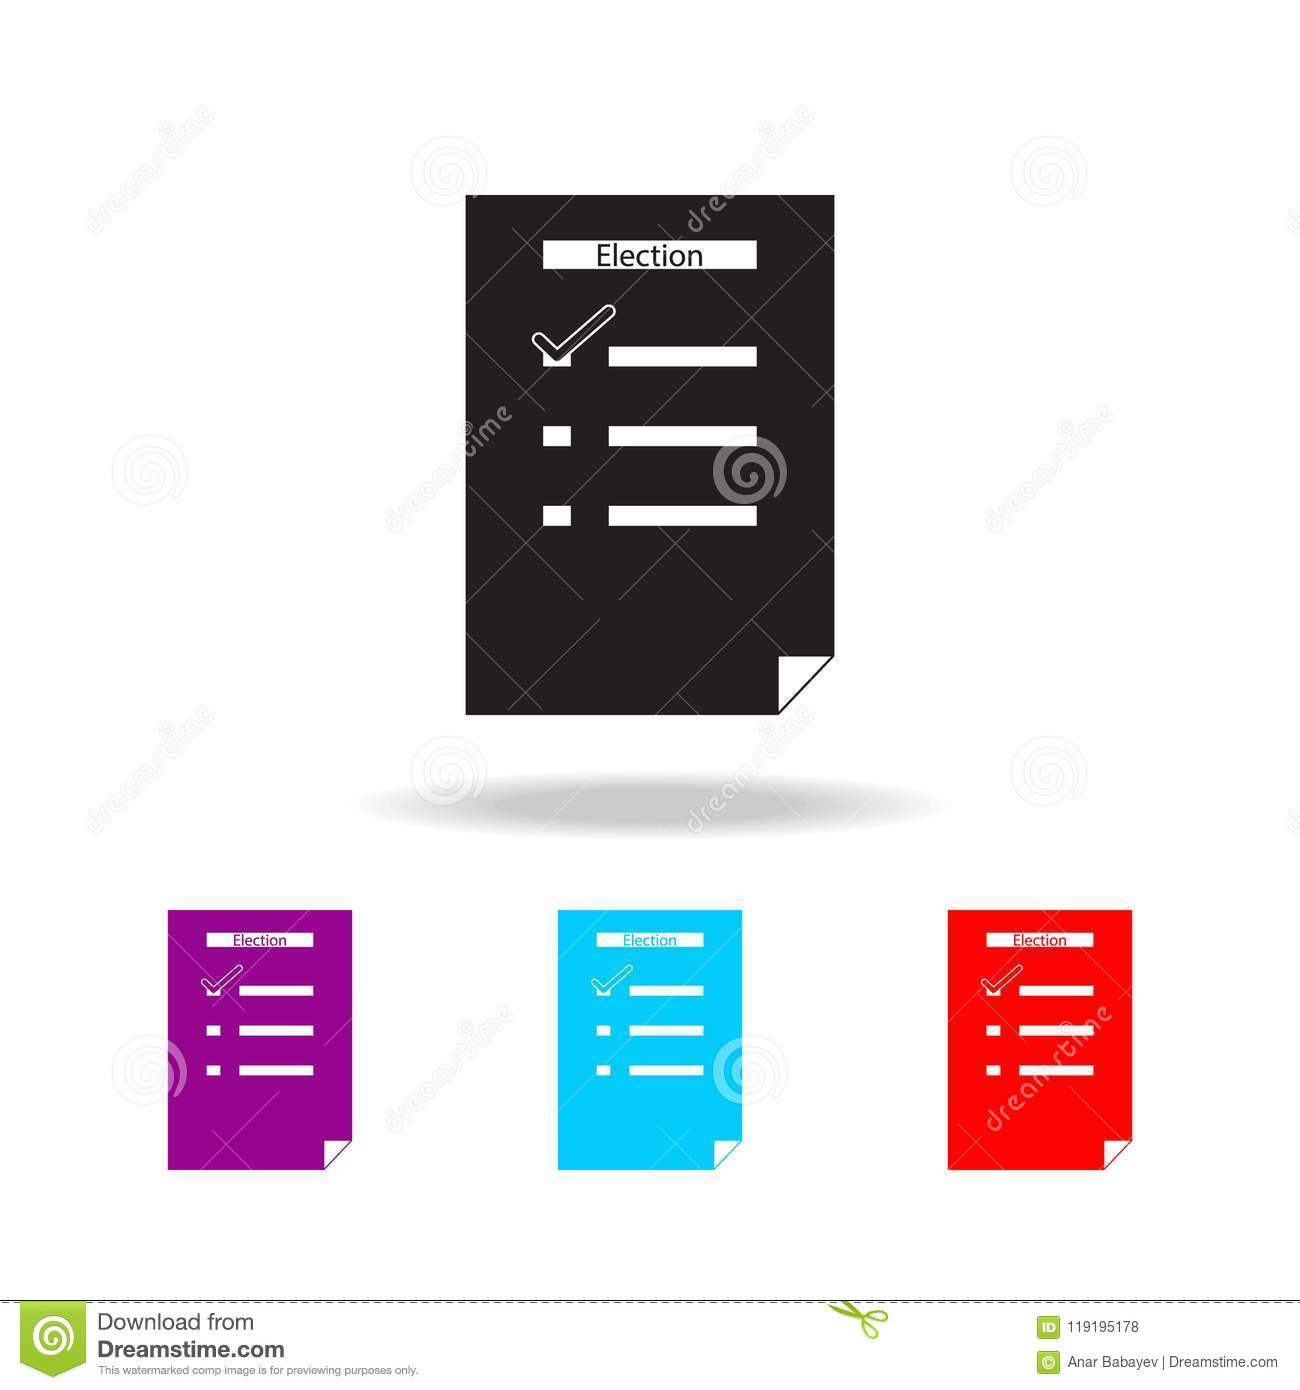 list of elections icon. Elements of election in multi colored icons. Premium quality graphic design icon. Simple icon for website